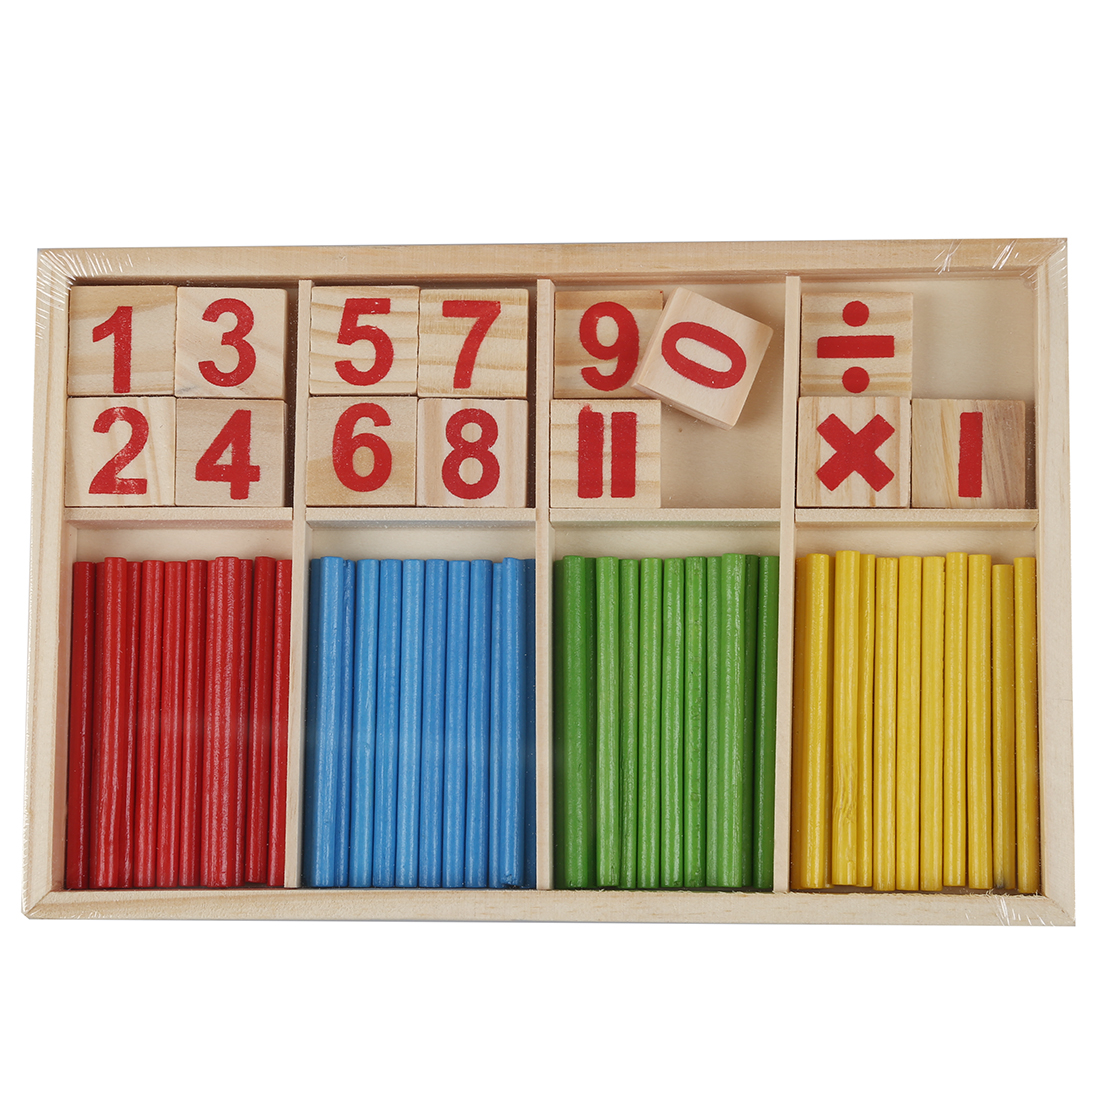 THZY Baby Children Wooden Counting Math Game Mathematics Toys Kids Preschool Education... by THZY